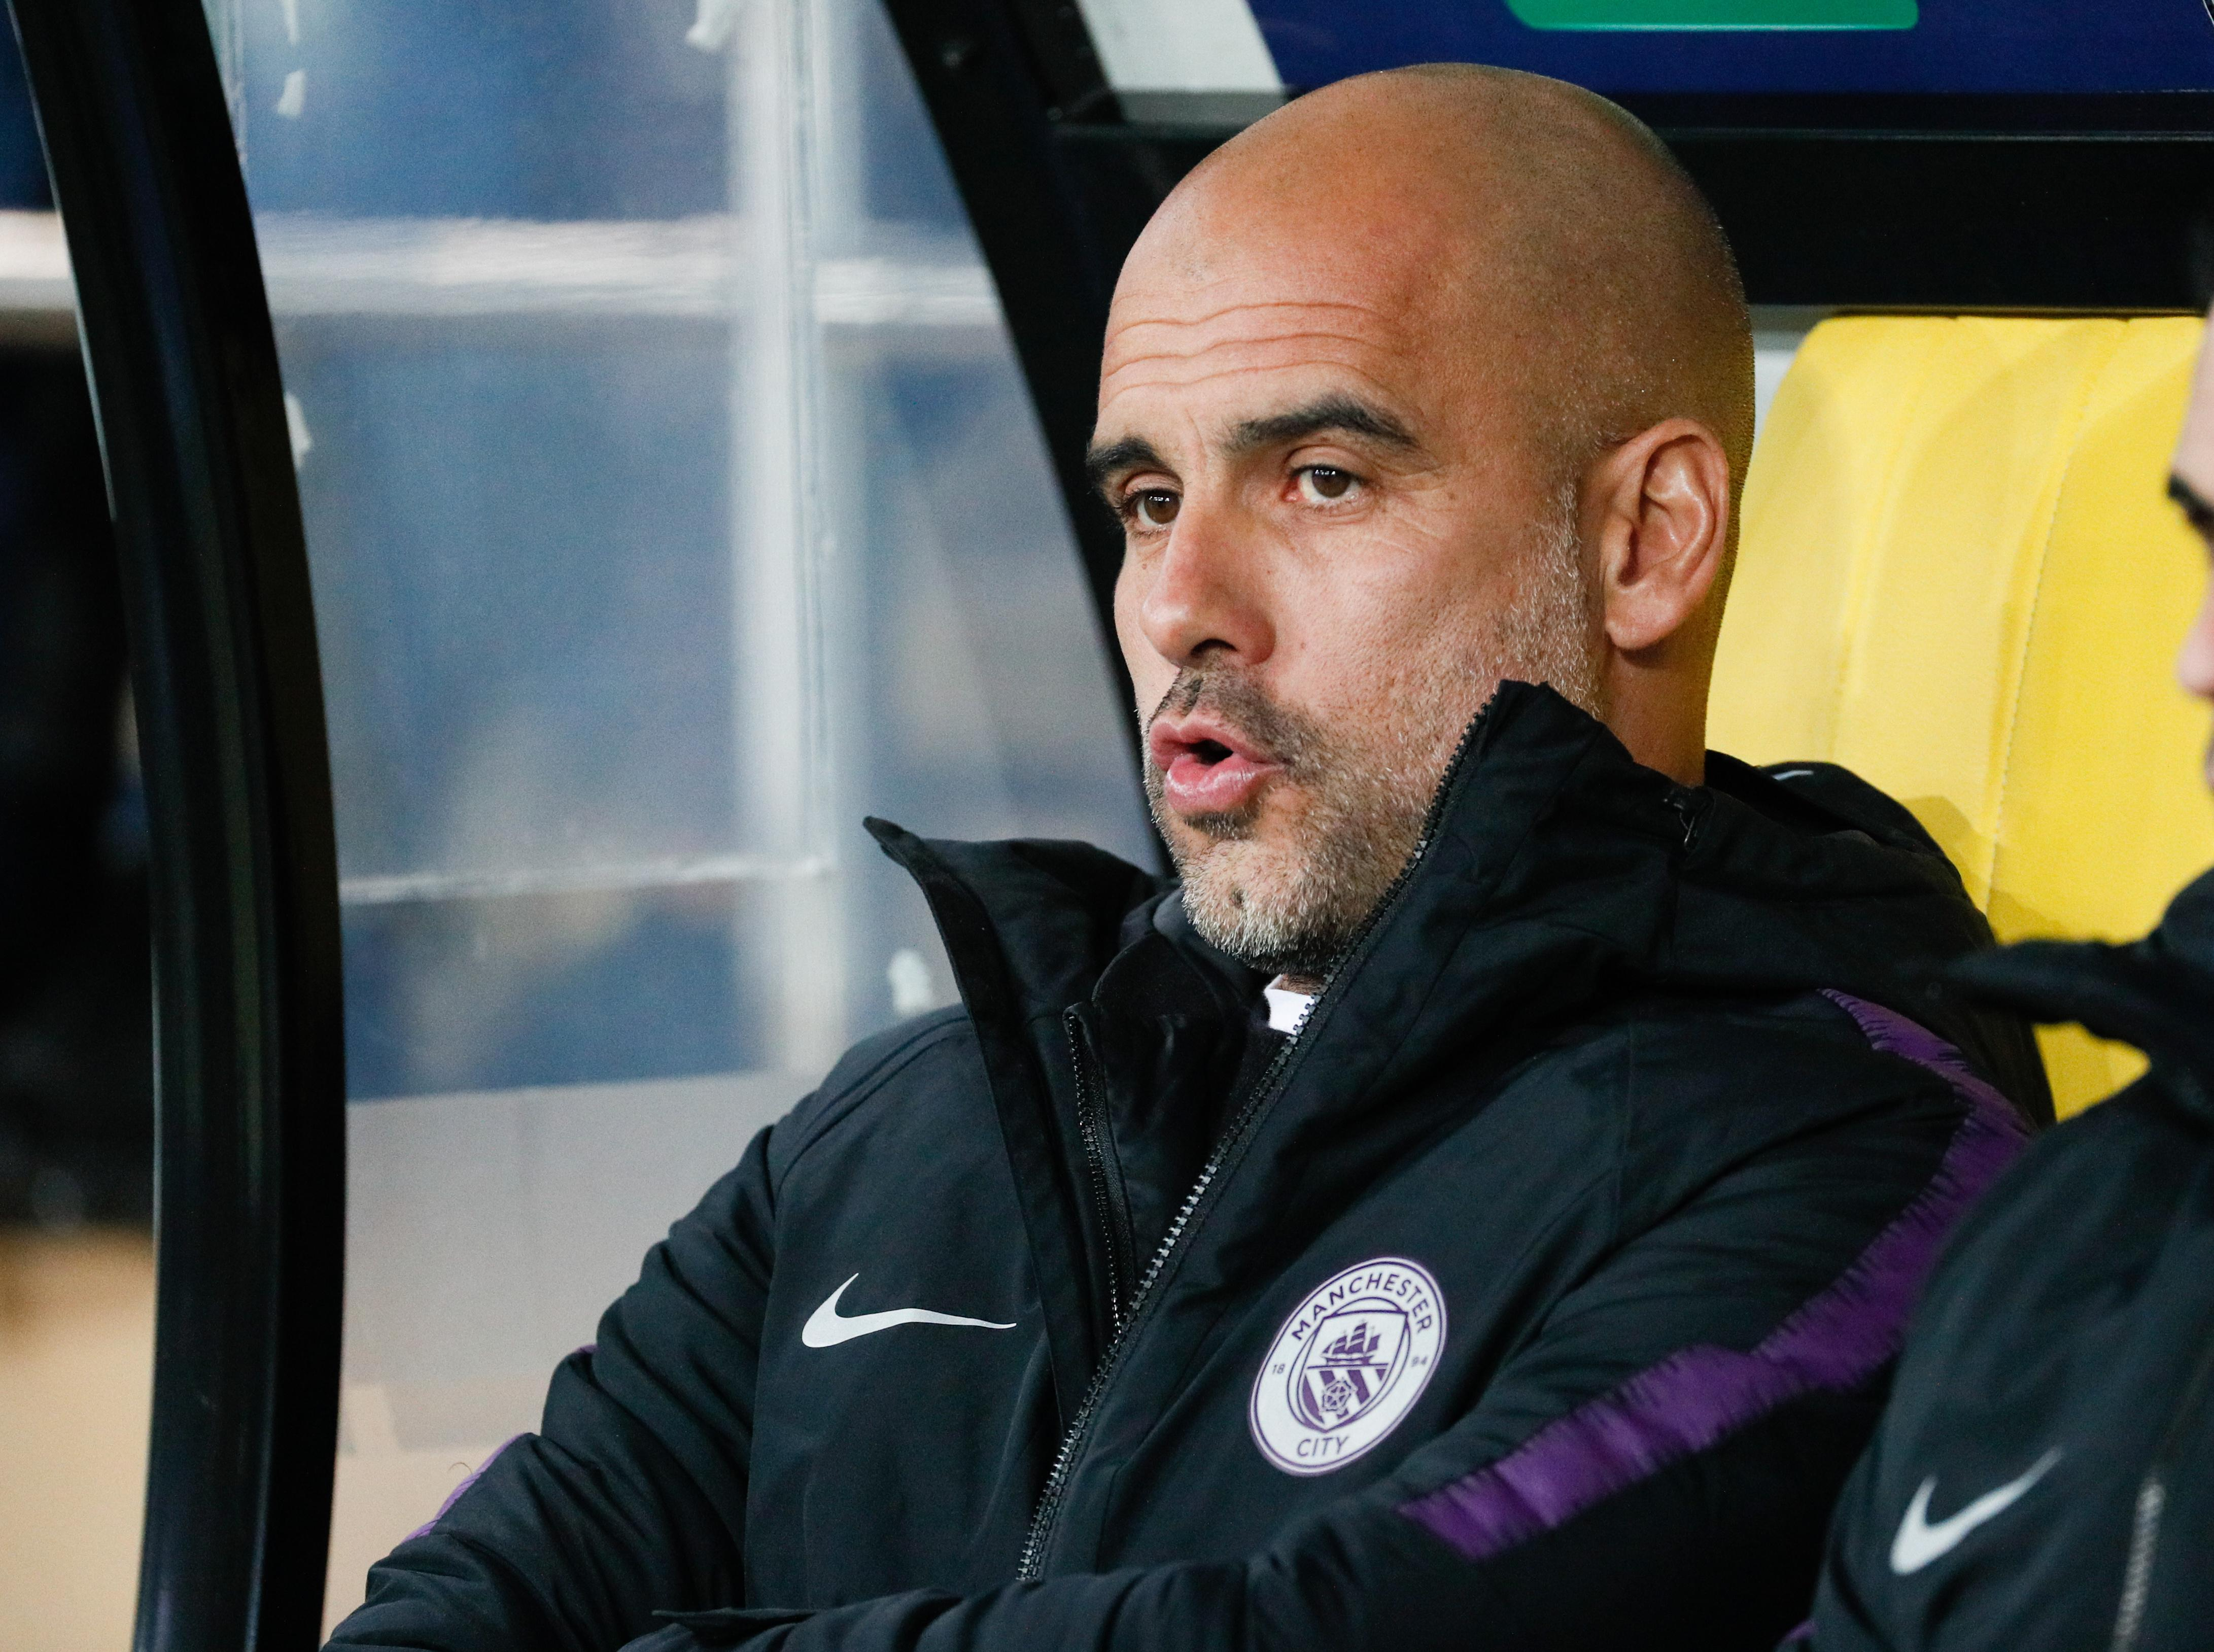 Pep Guardiola has already expressed his concern about the match